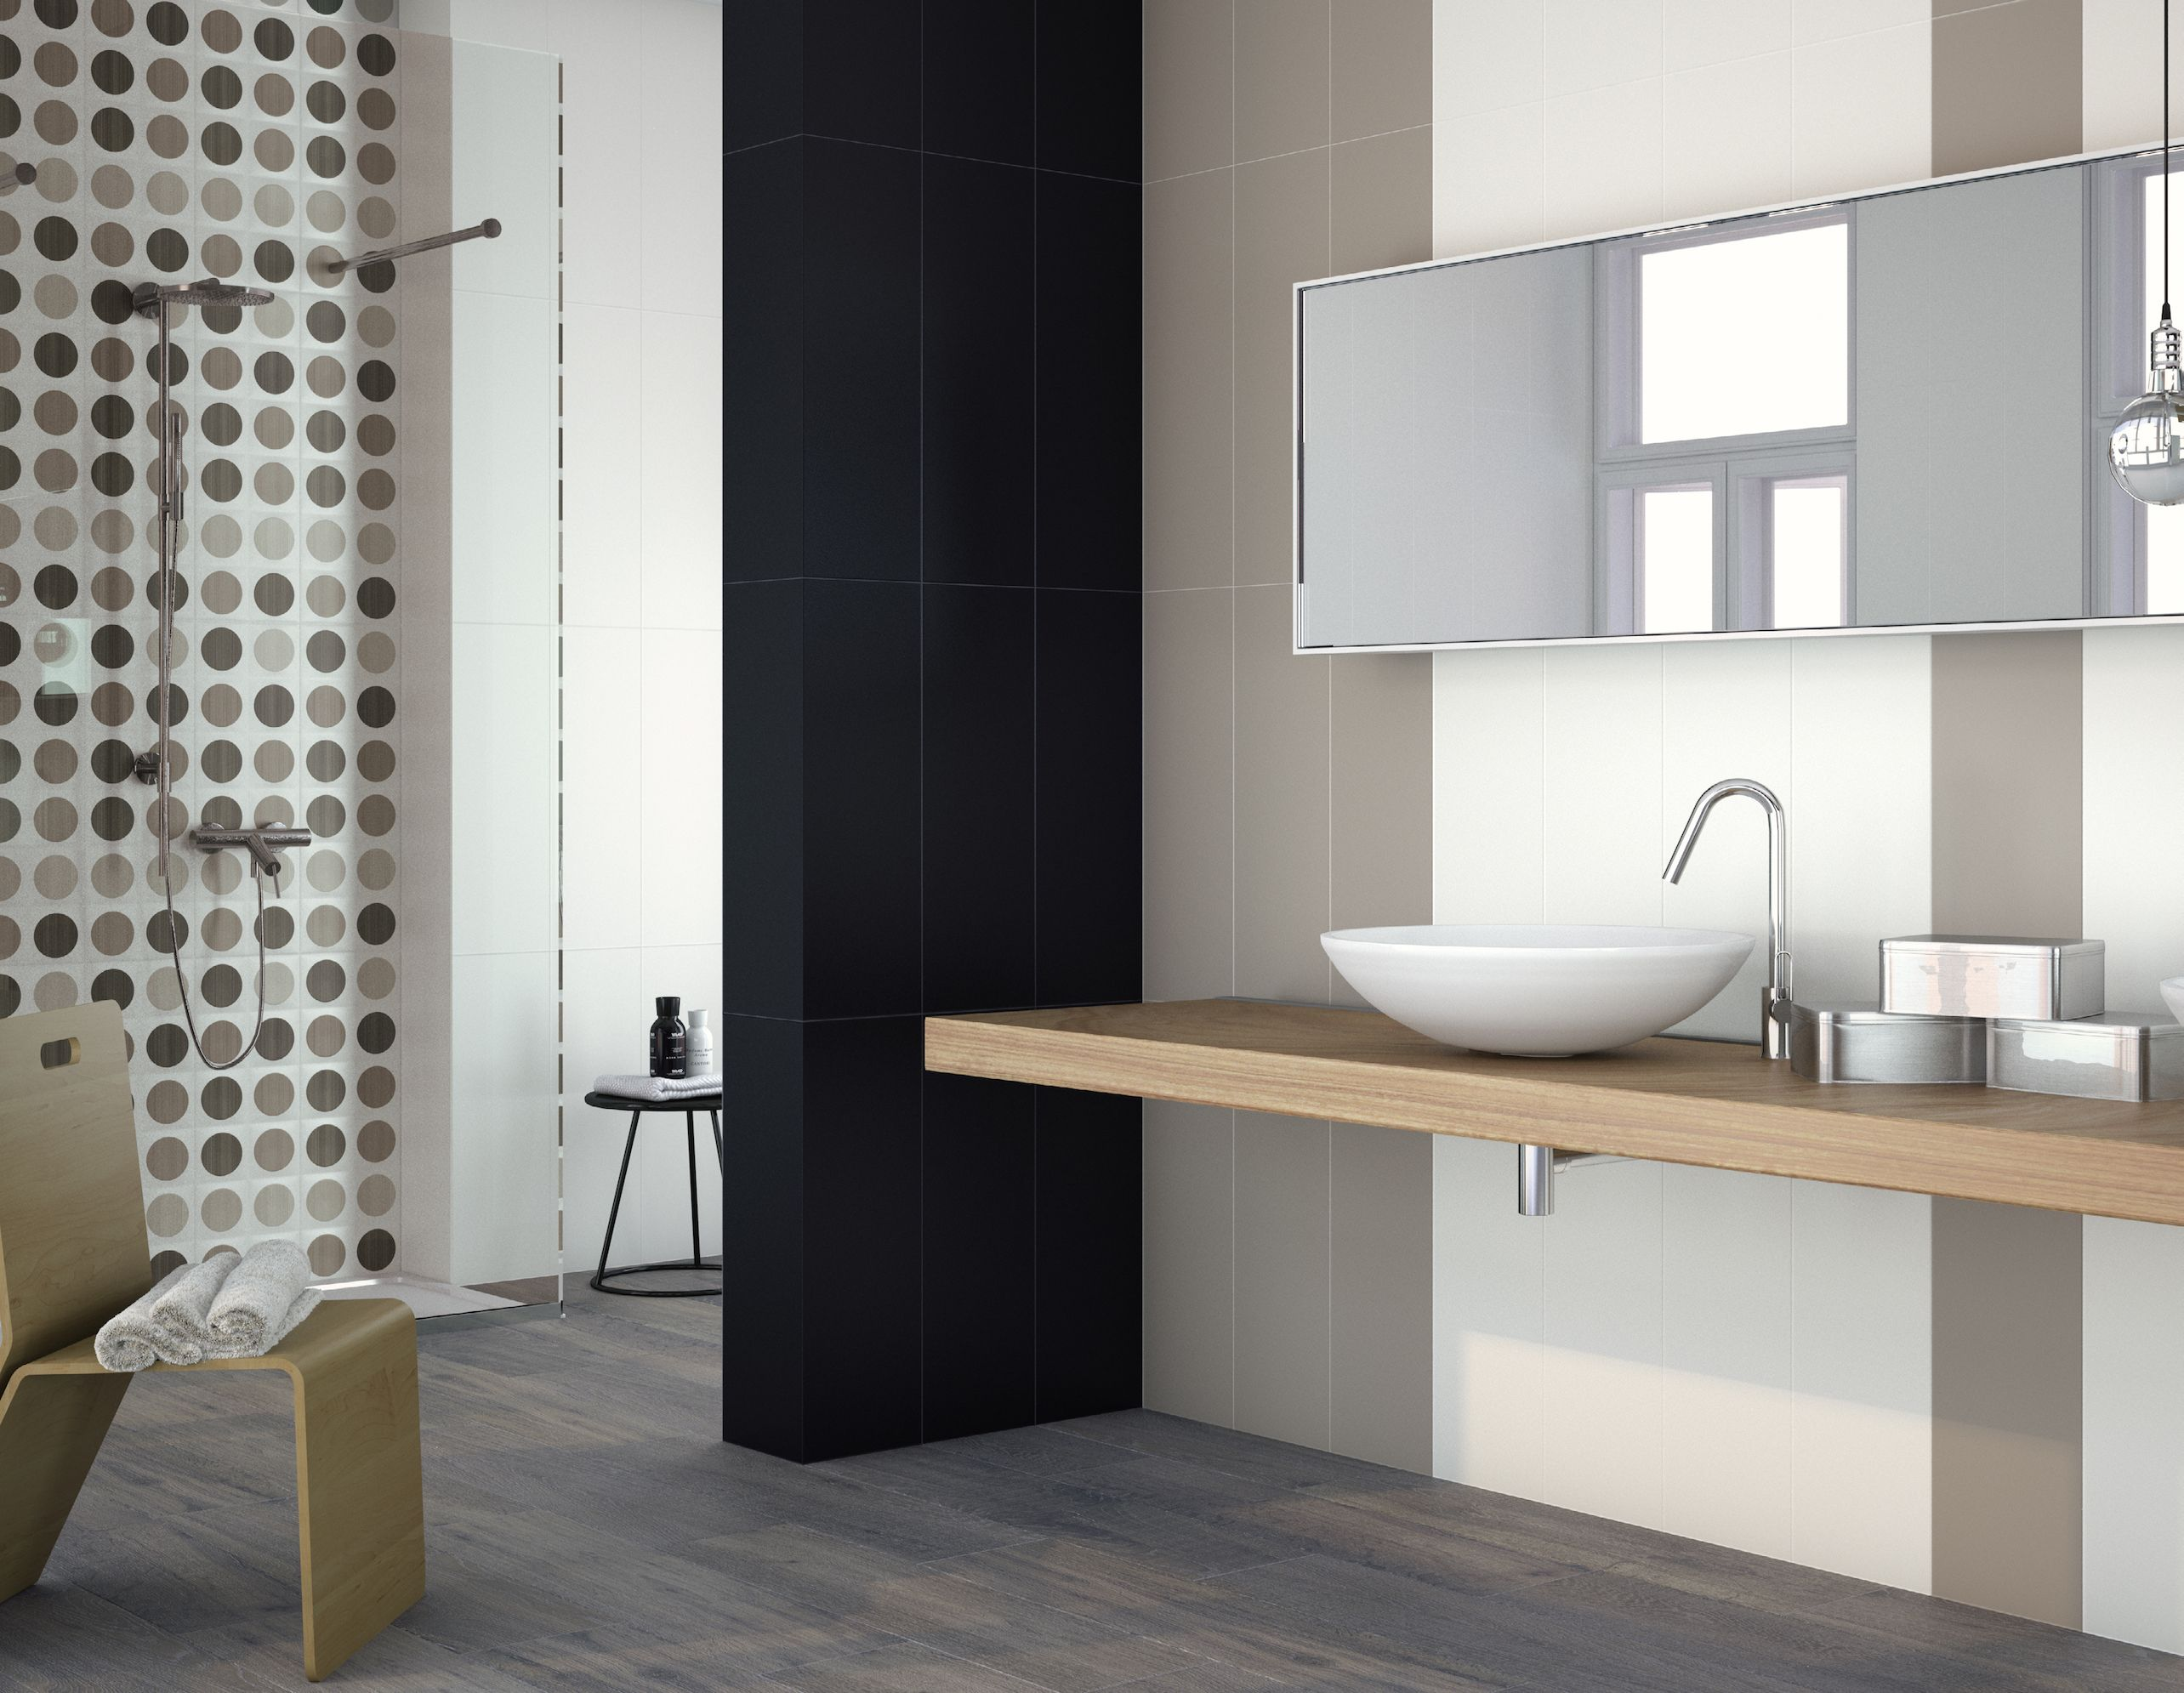 A Simple And Diverse Tile That Will Give Your Walls Clean Timeless Surface Design ElementsPorcelain TileArchitecture DesignInteriordesignSatin